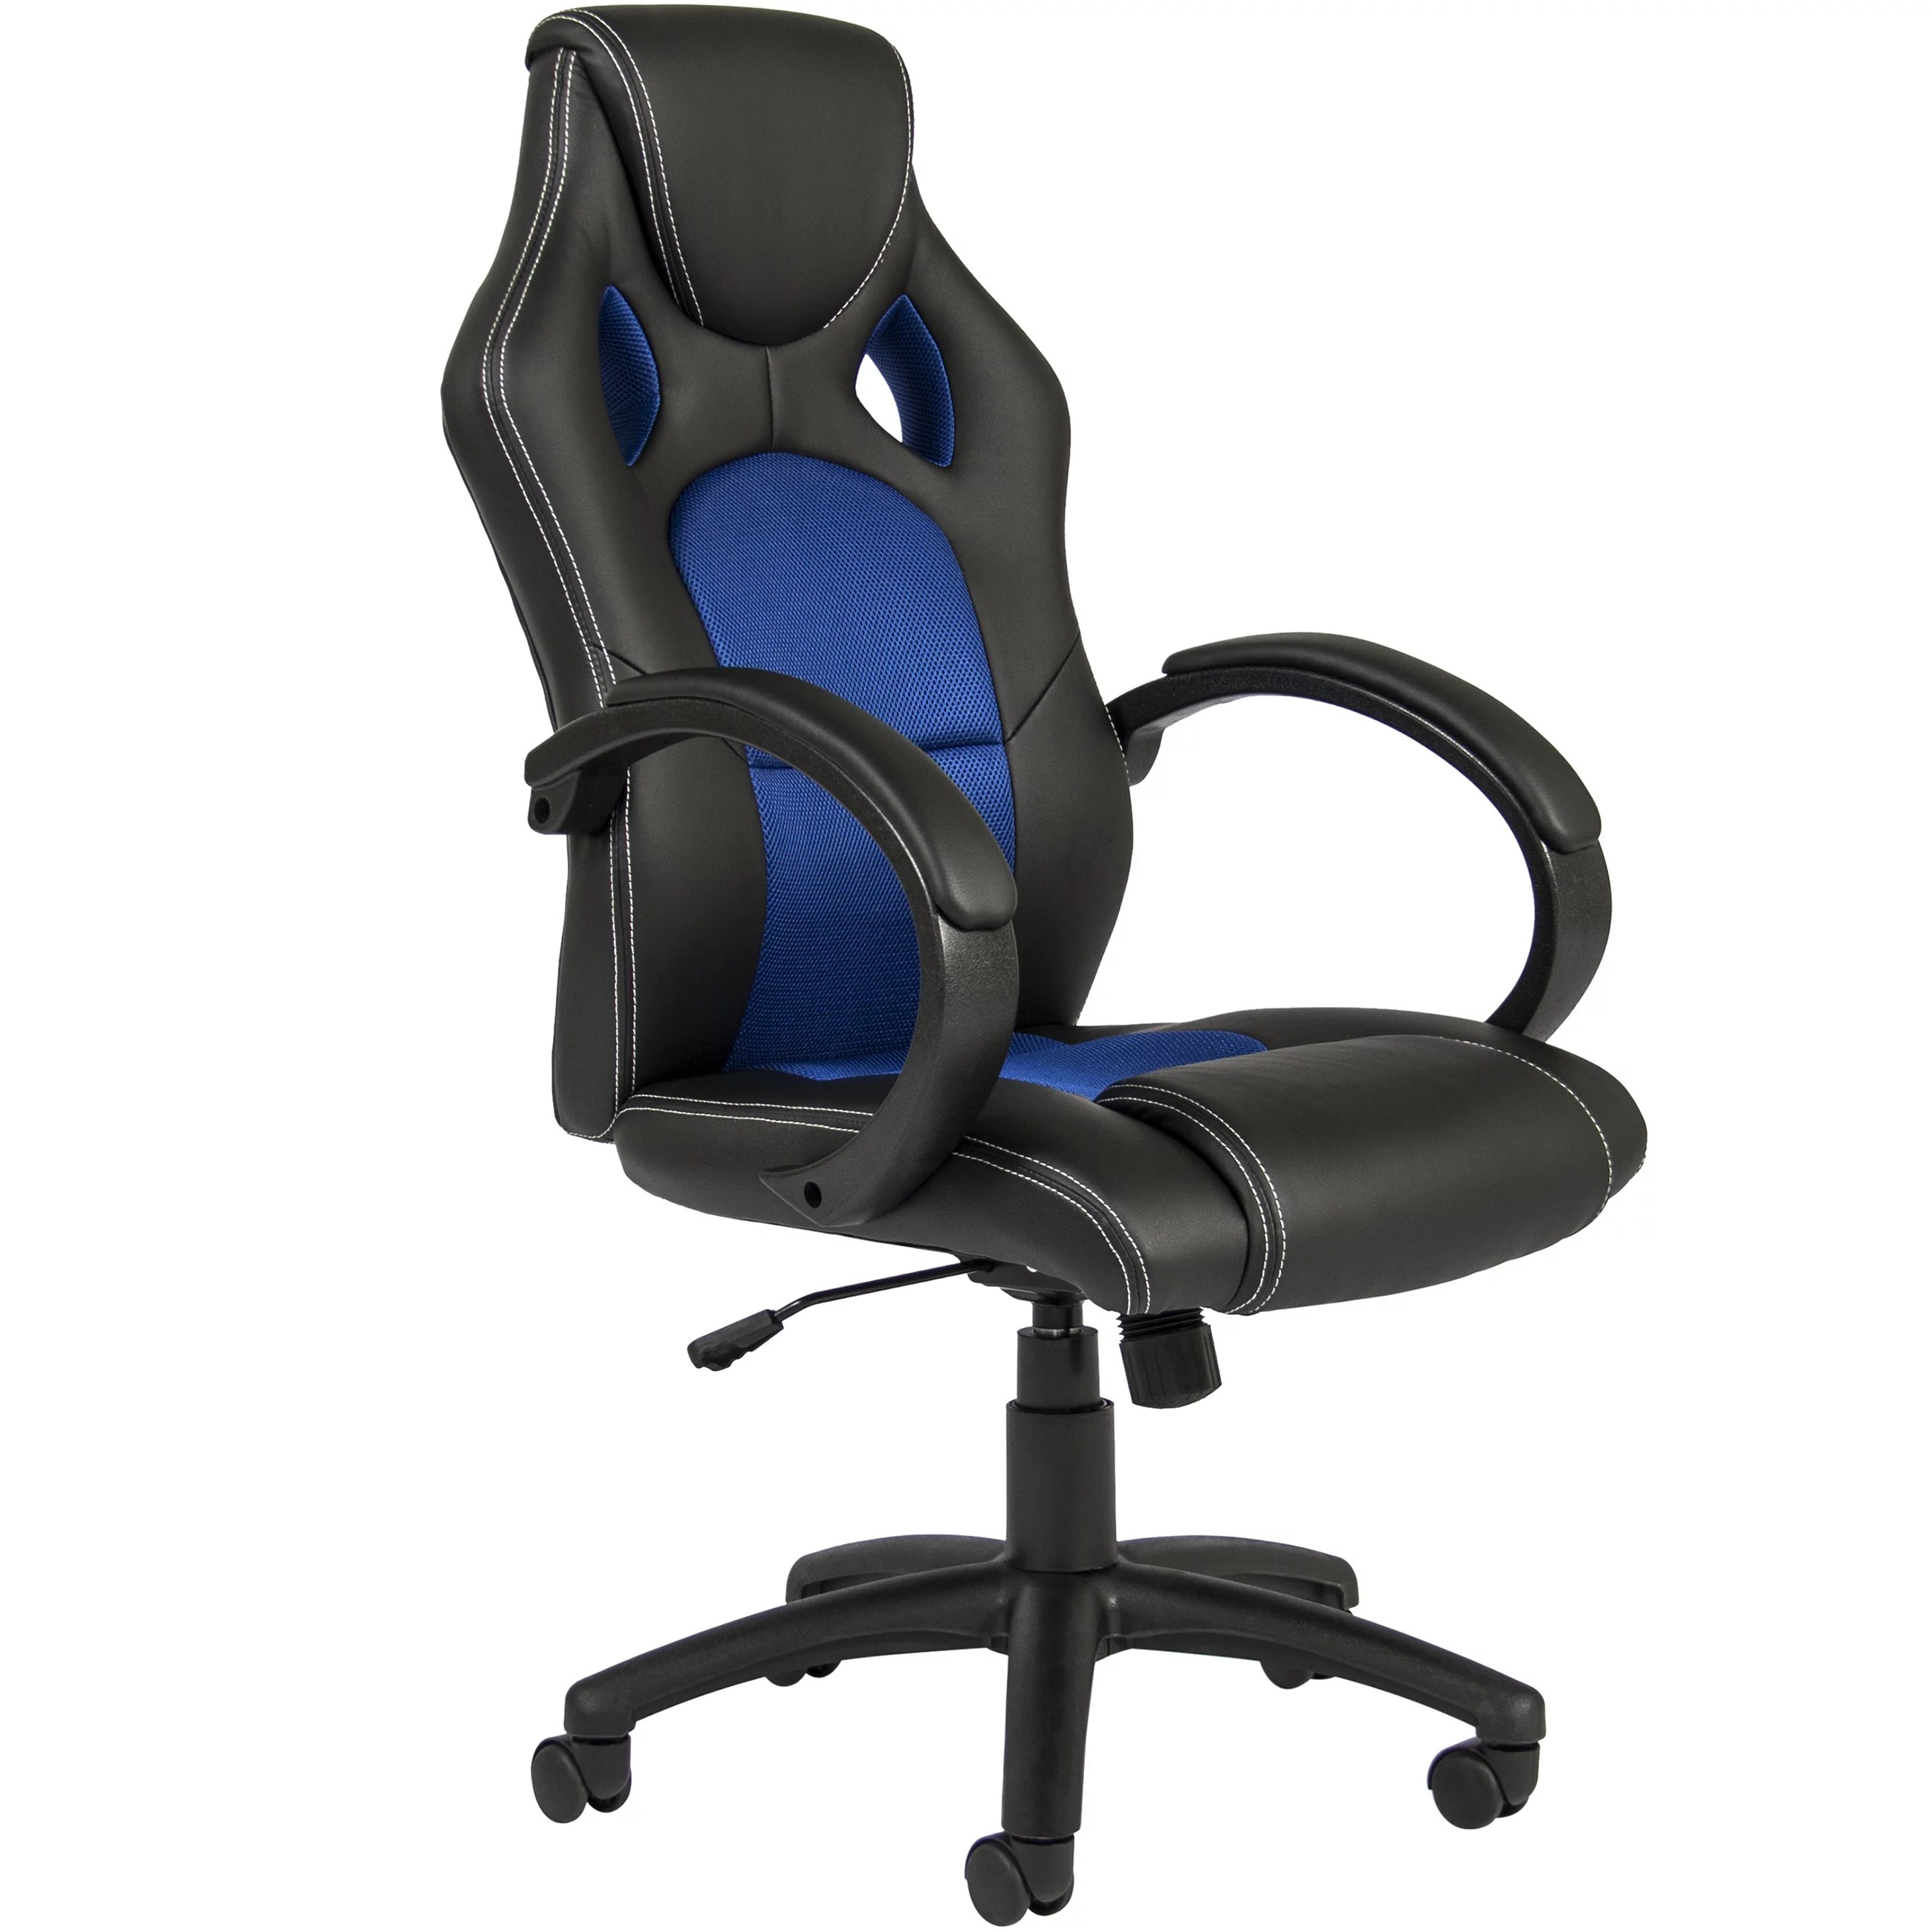 desk chair blue wedding cover hire wales best choice products executive padded pu leather racing style design swivel office for gaming work w high back seat armrests tilt height adjustment